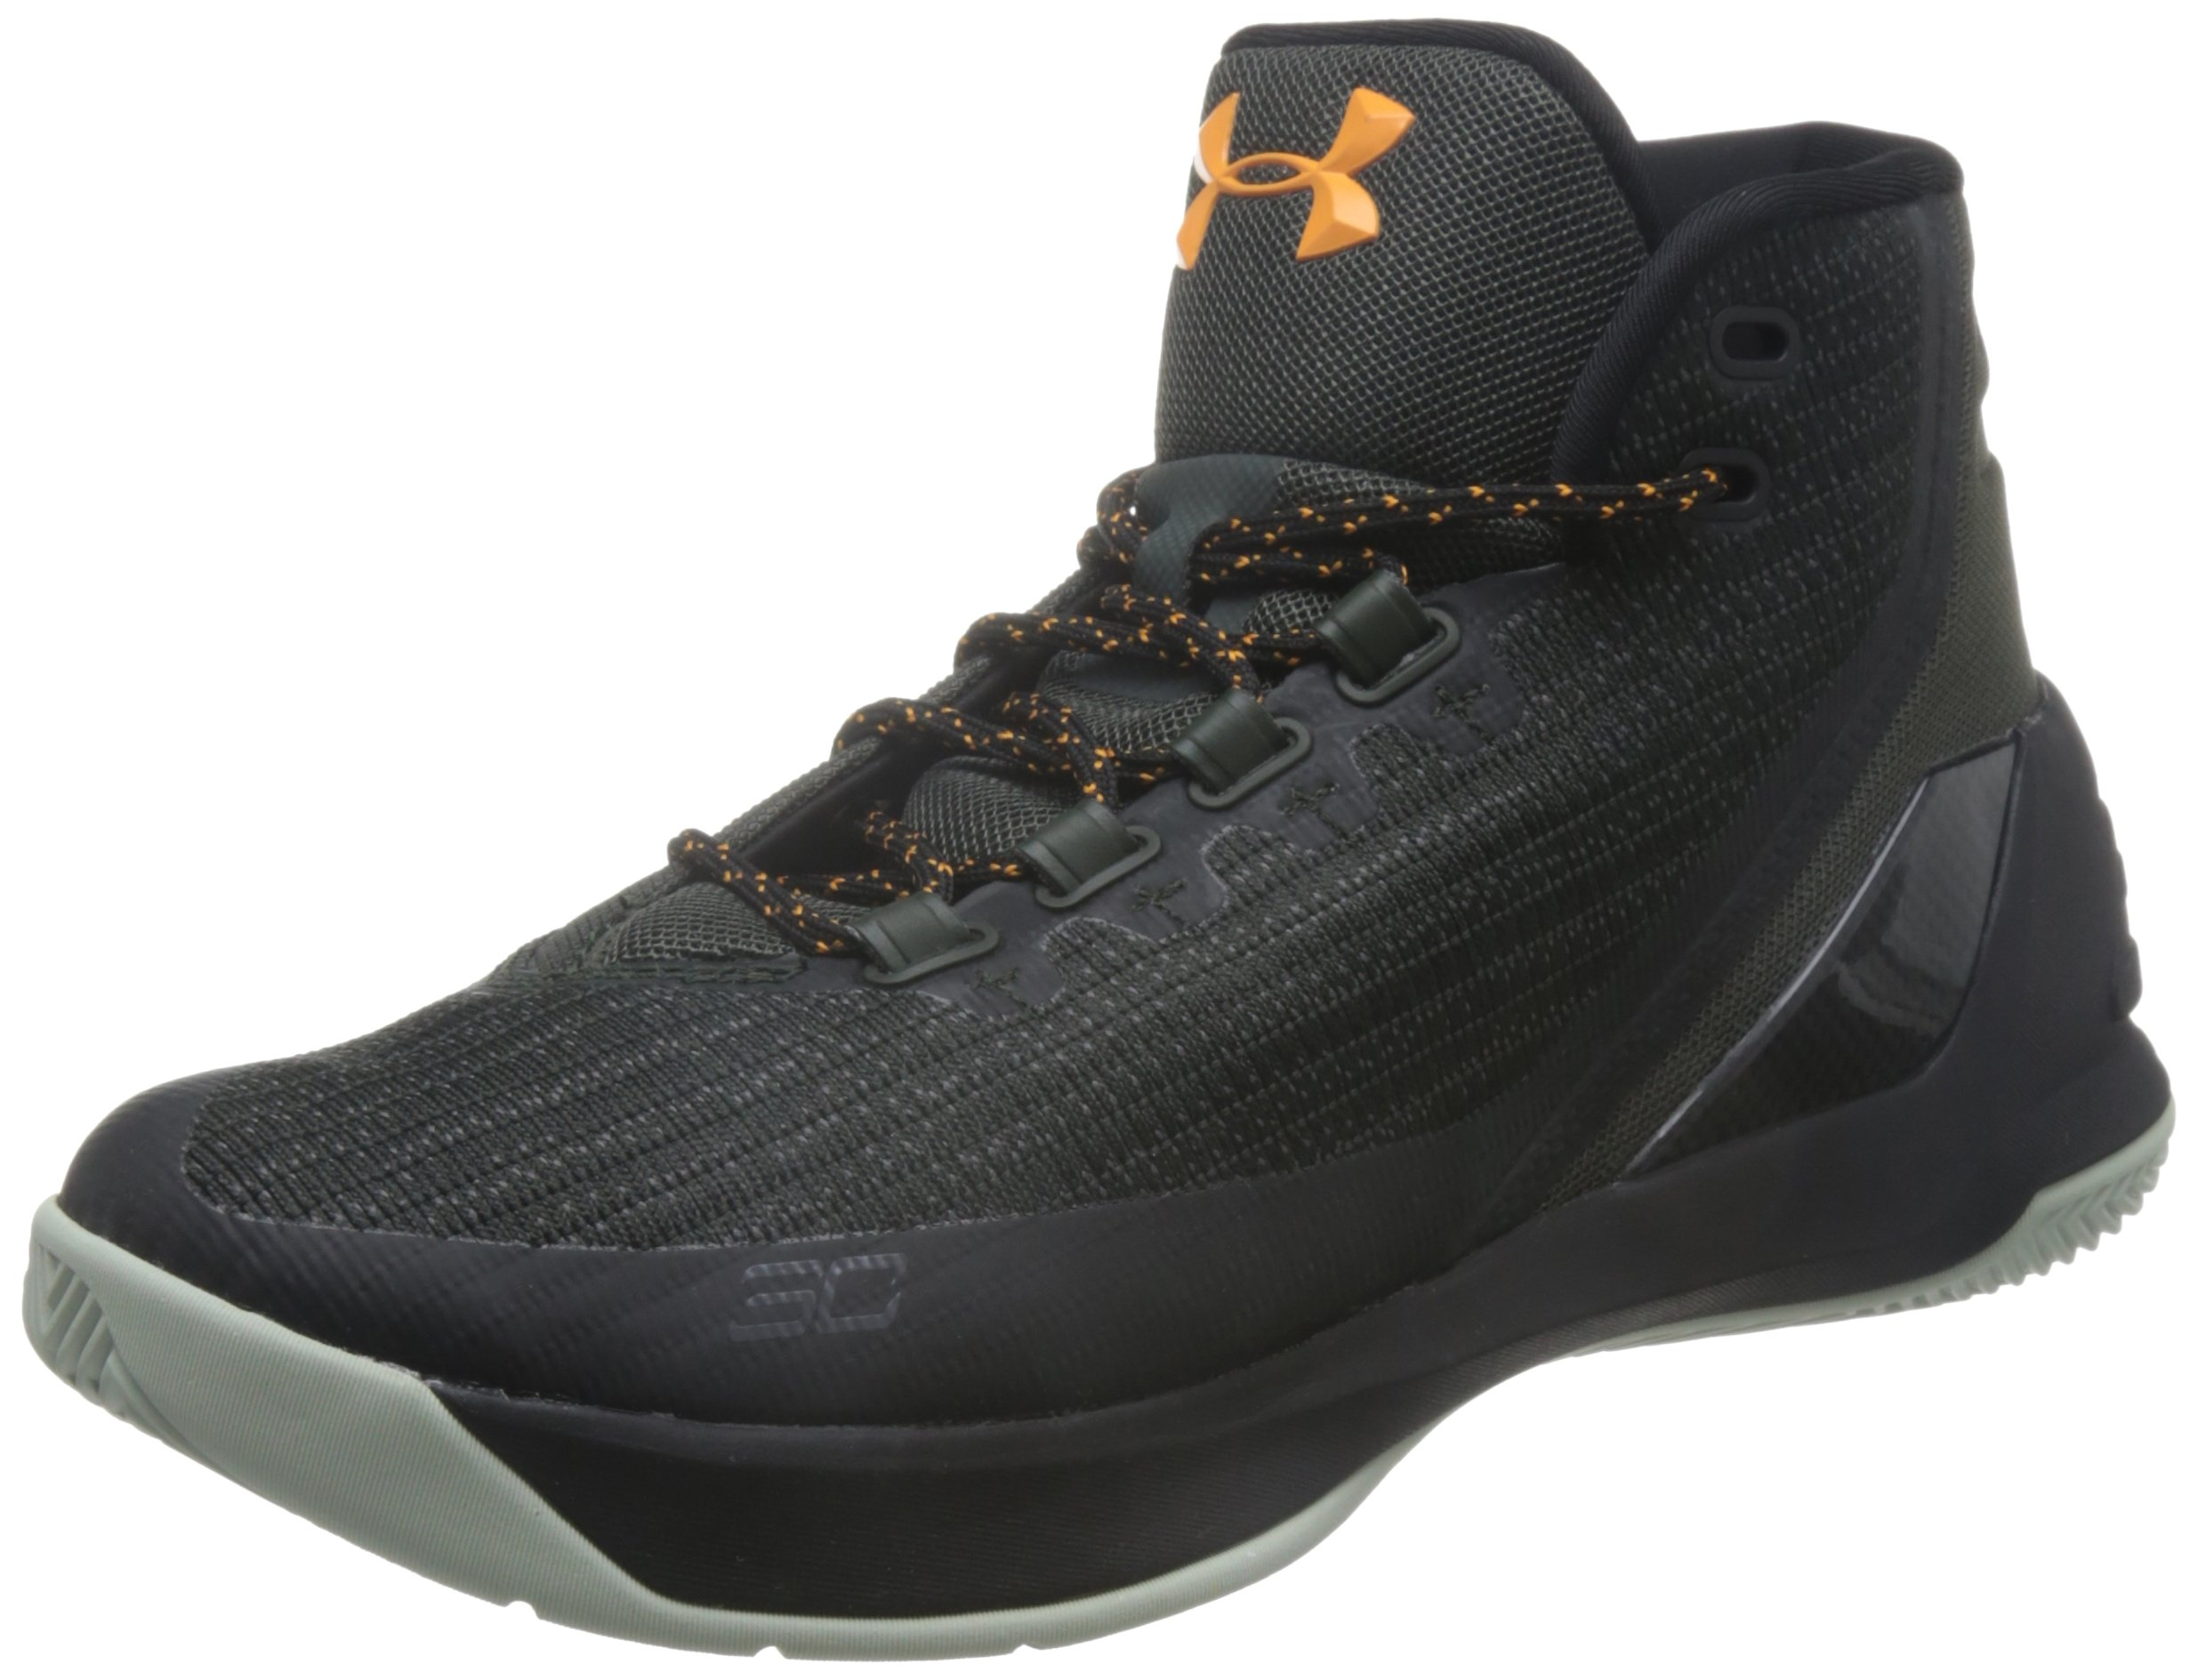 Under Armour Mens Curry 3 Basketball Shoe (11 D(M) US, Artillery Green/Black)